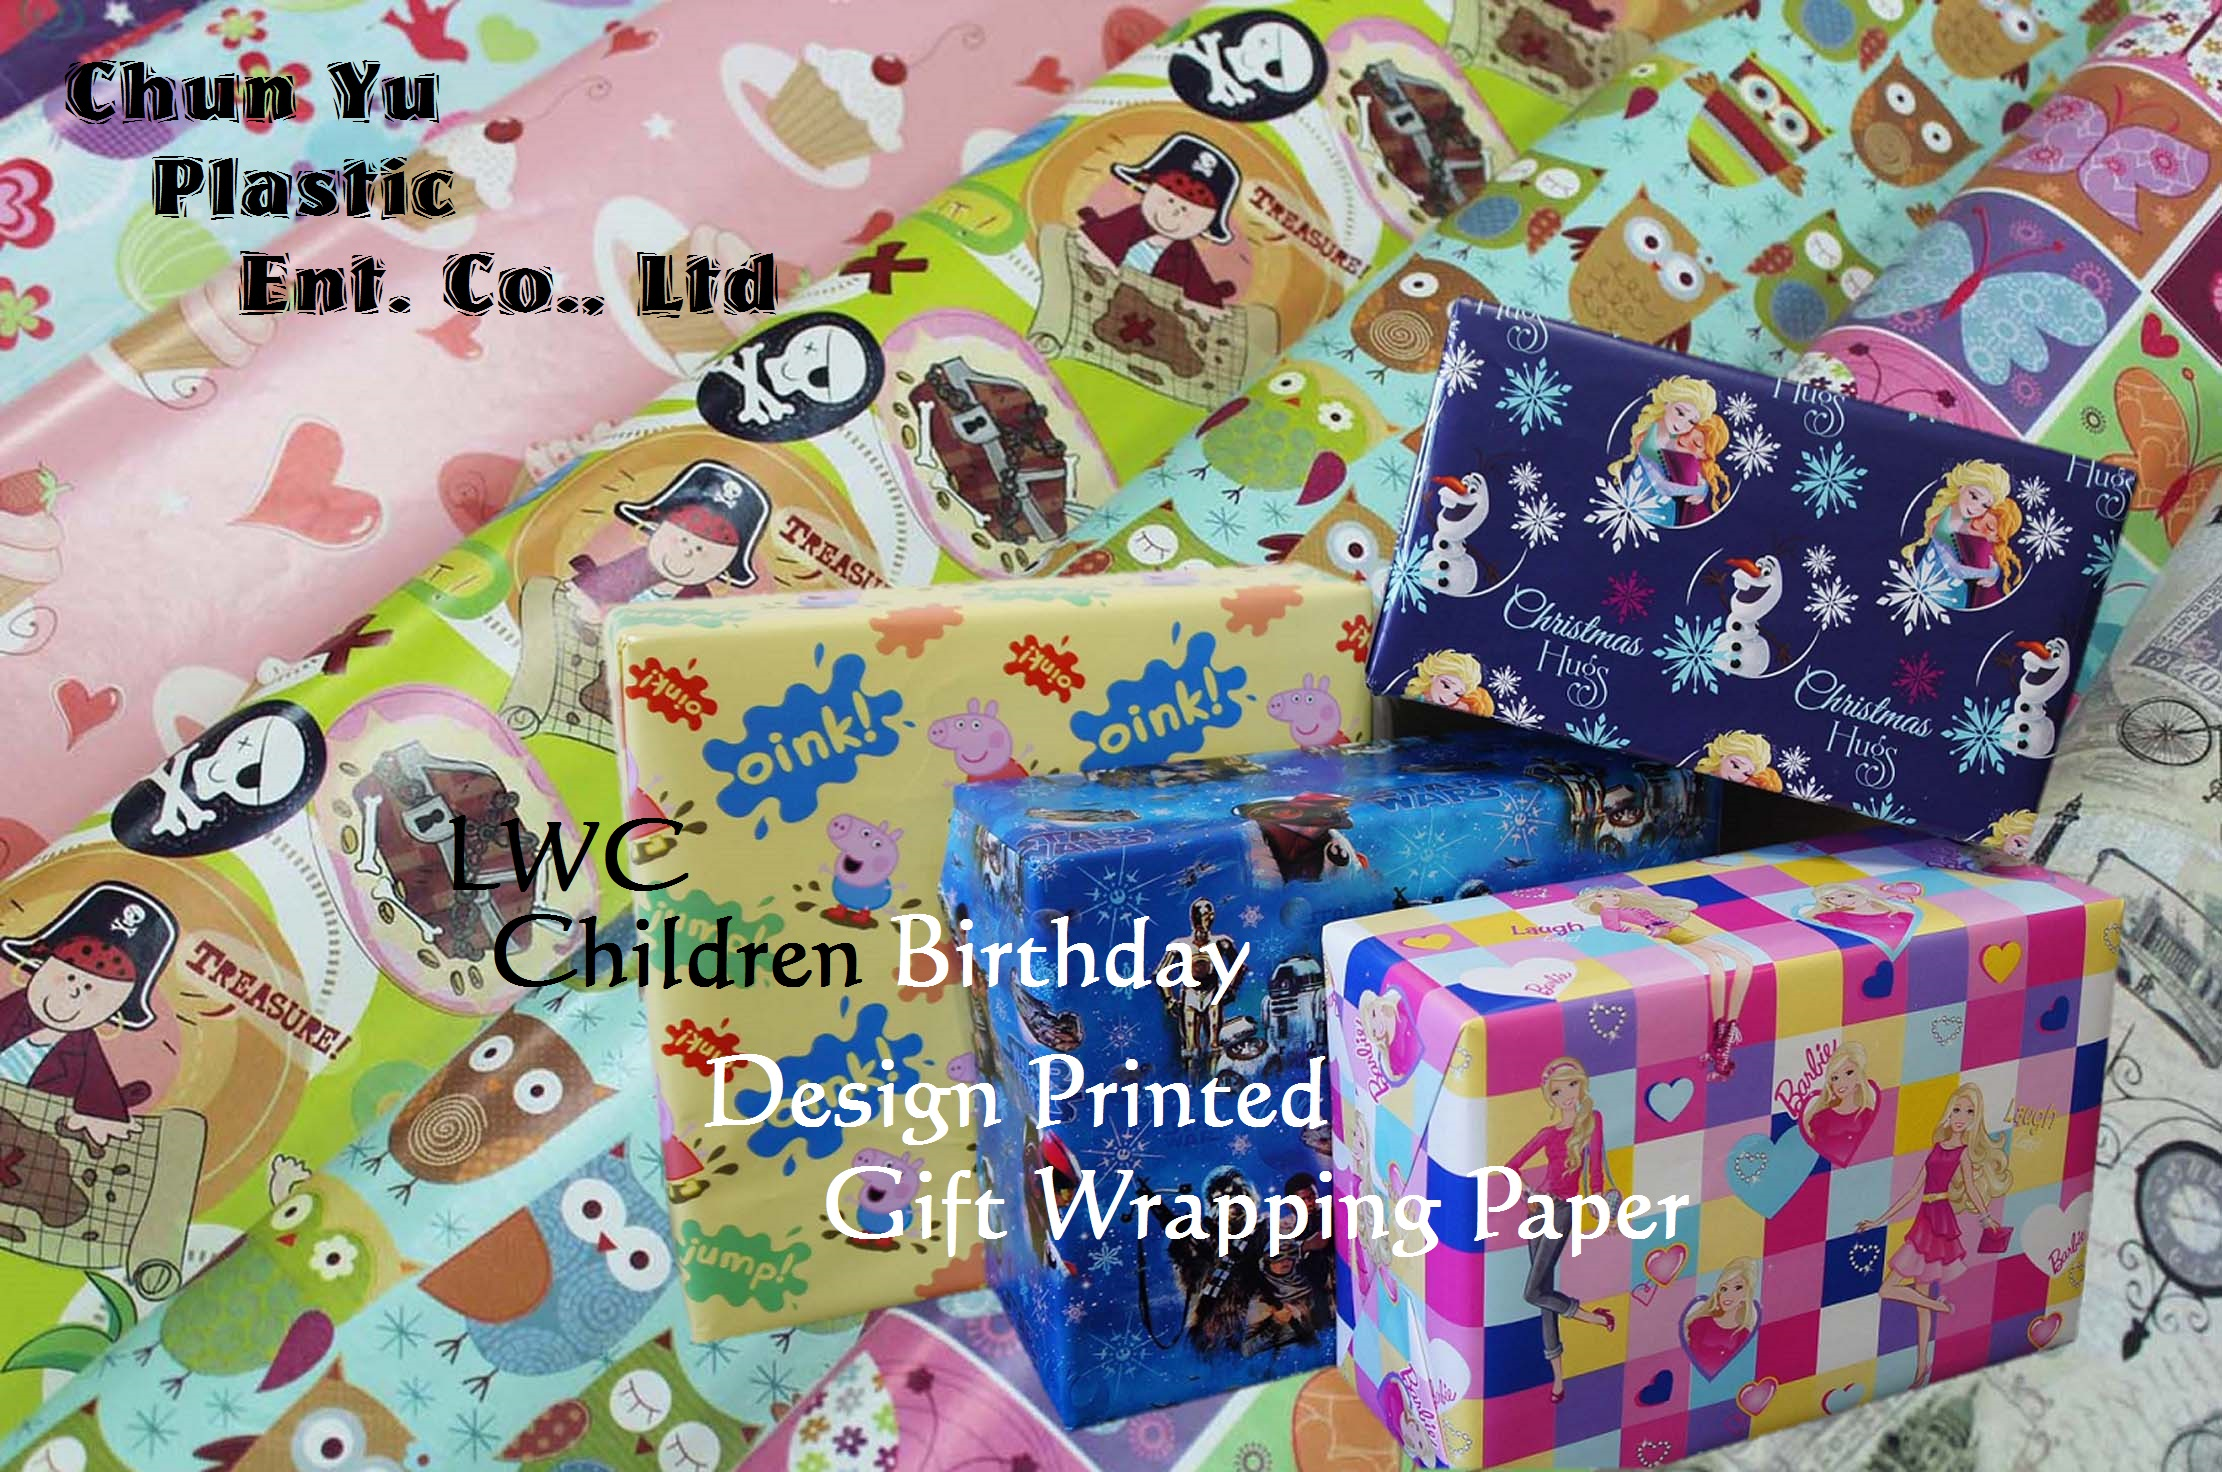 LWC gift wrapping paper printed with girls and boys designs for children birthday celebrations